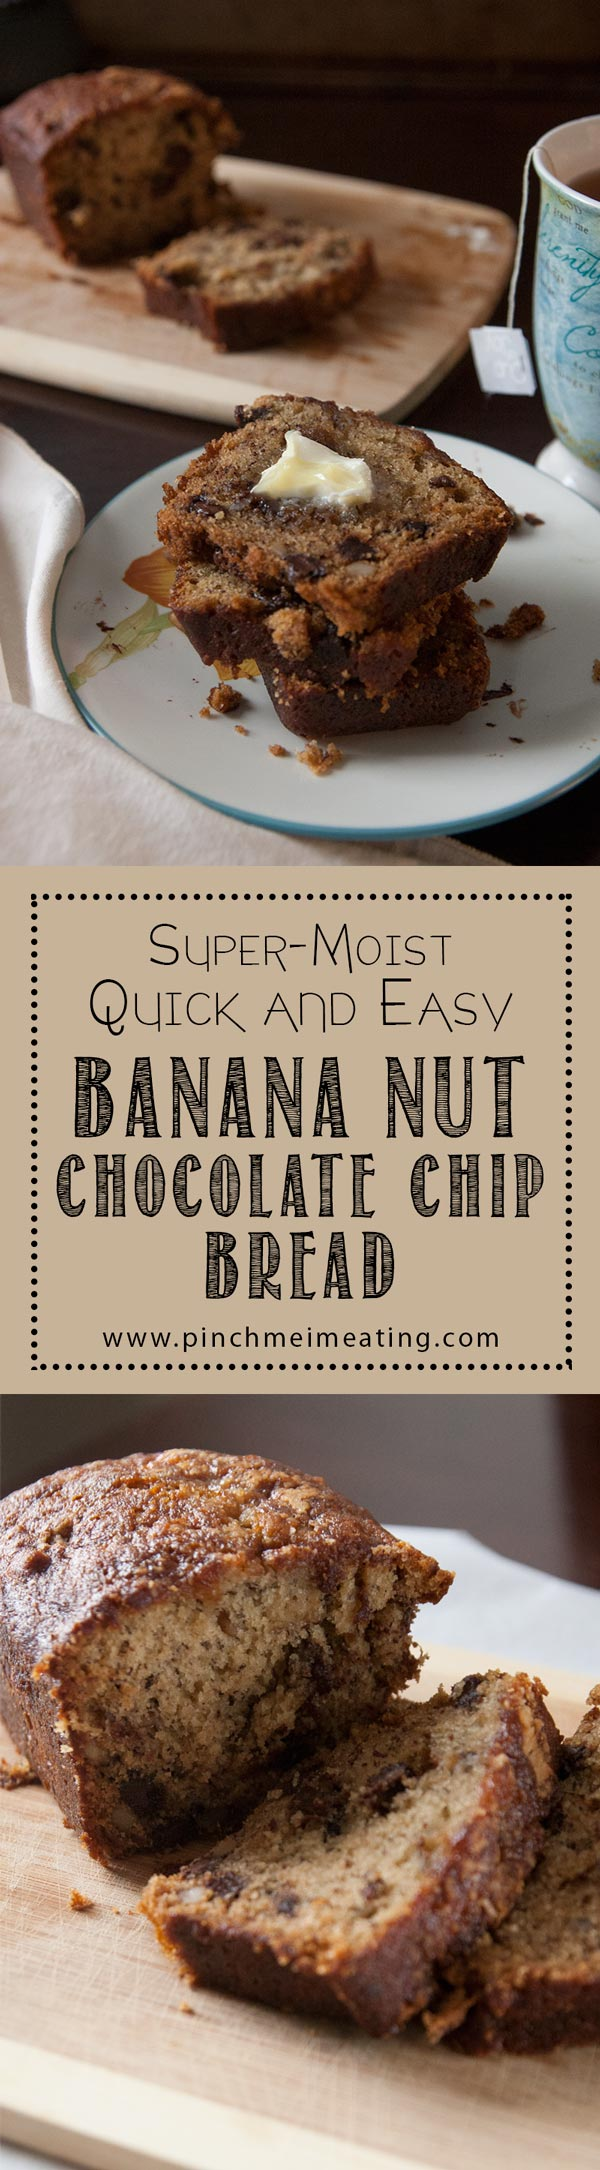 Super-Moist Quick and Easy Banana Nut Chocolate Chip Bread | The moistest, meltiest, most delicious chocolate chip banana nut bread you'll ever taste. In the oven in only 20 minutes, and it's great for breakfast AND dessert! | www.pinchmeimeating.com